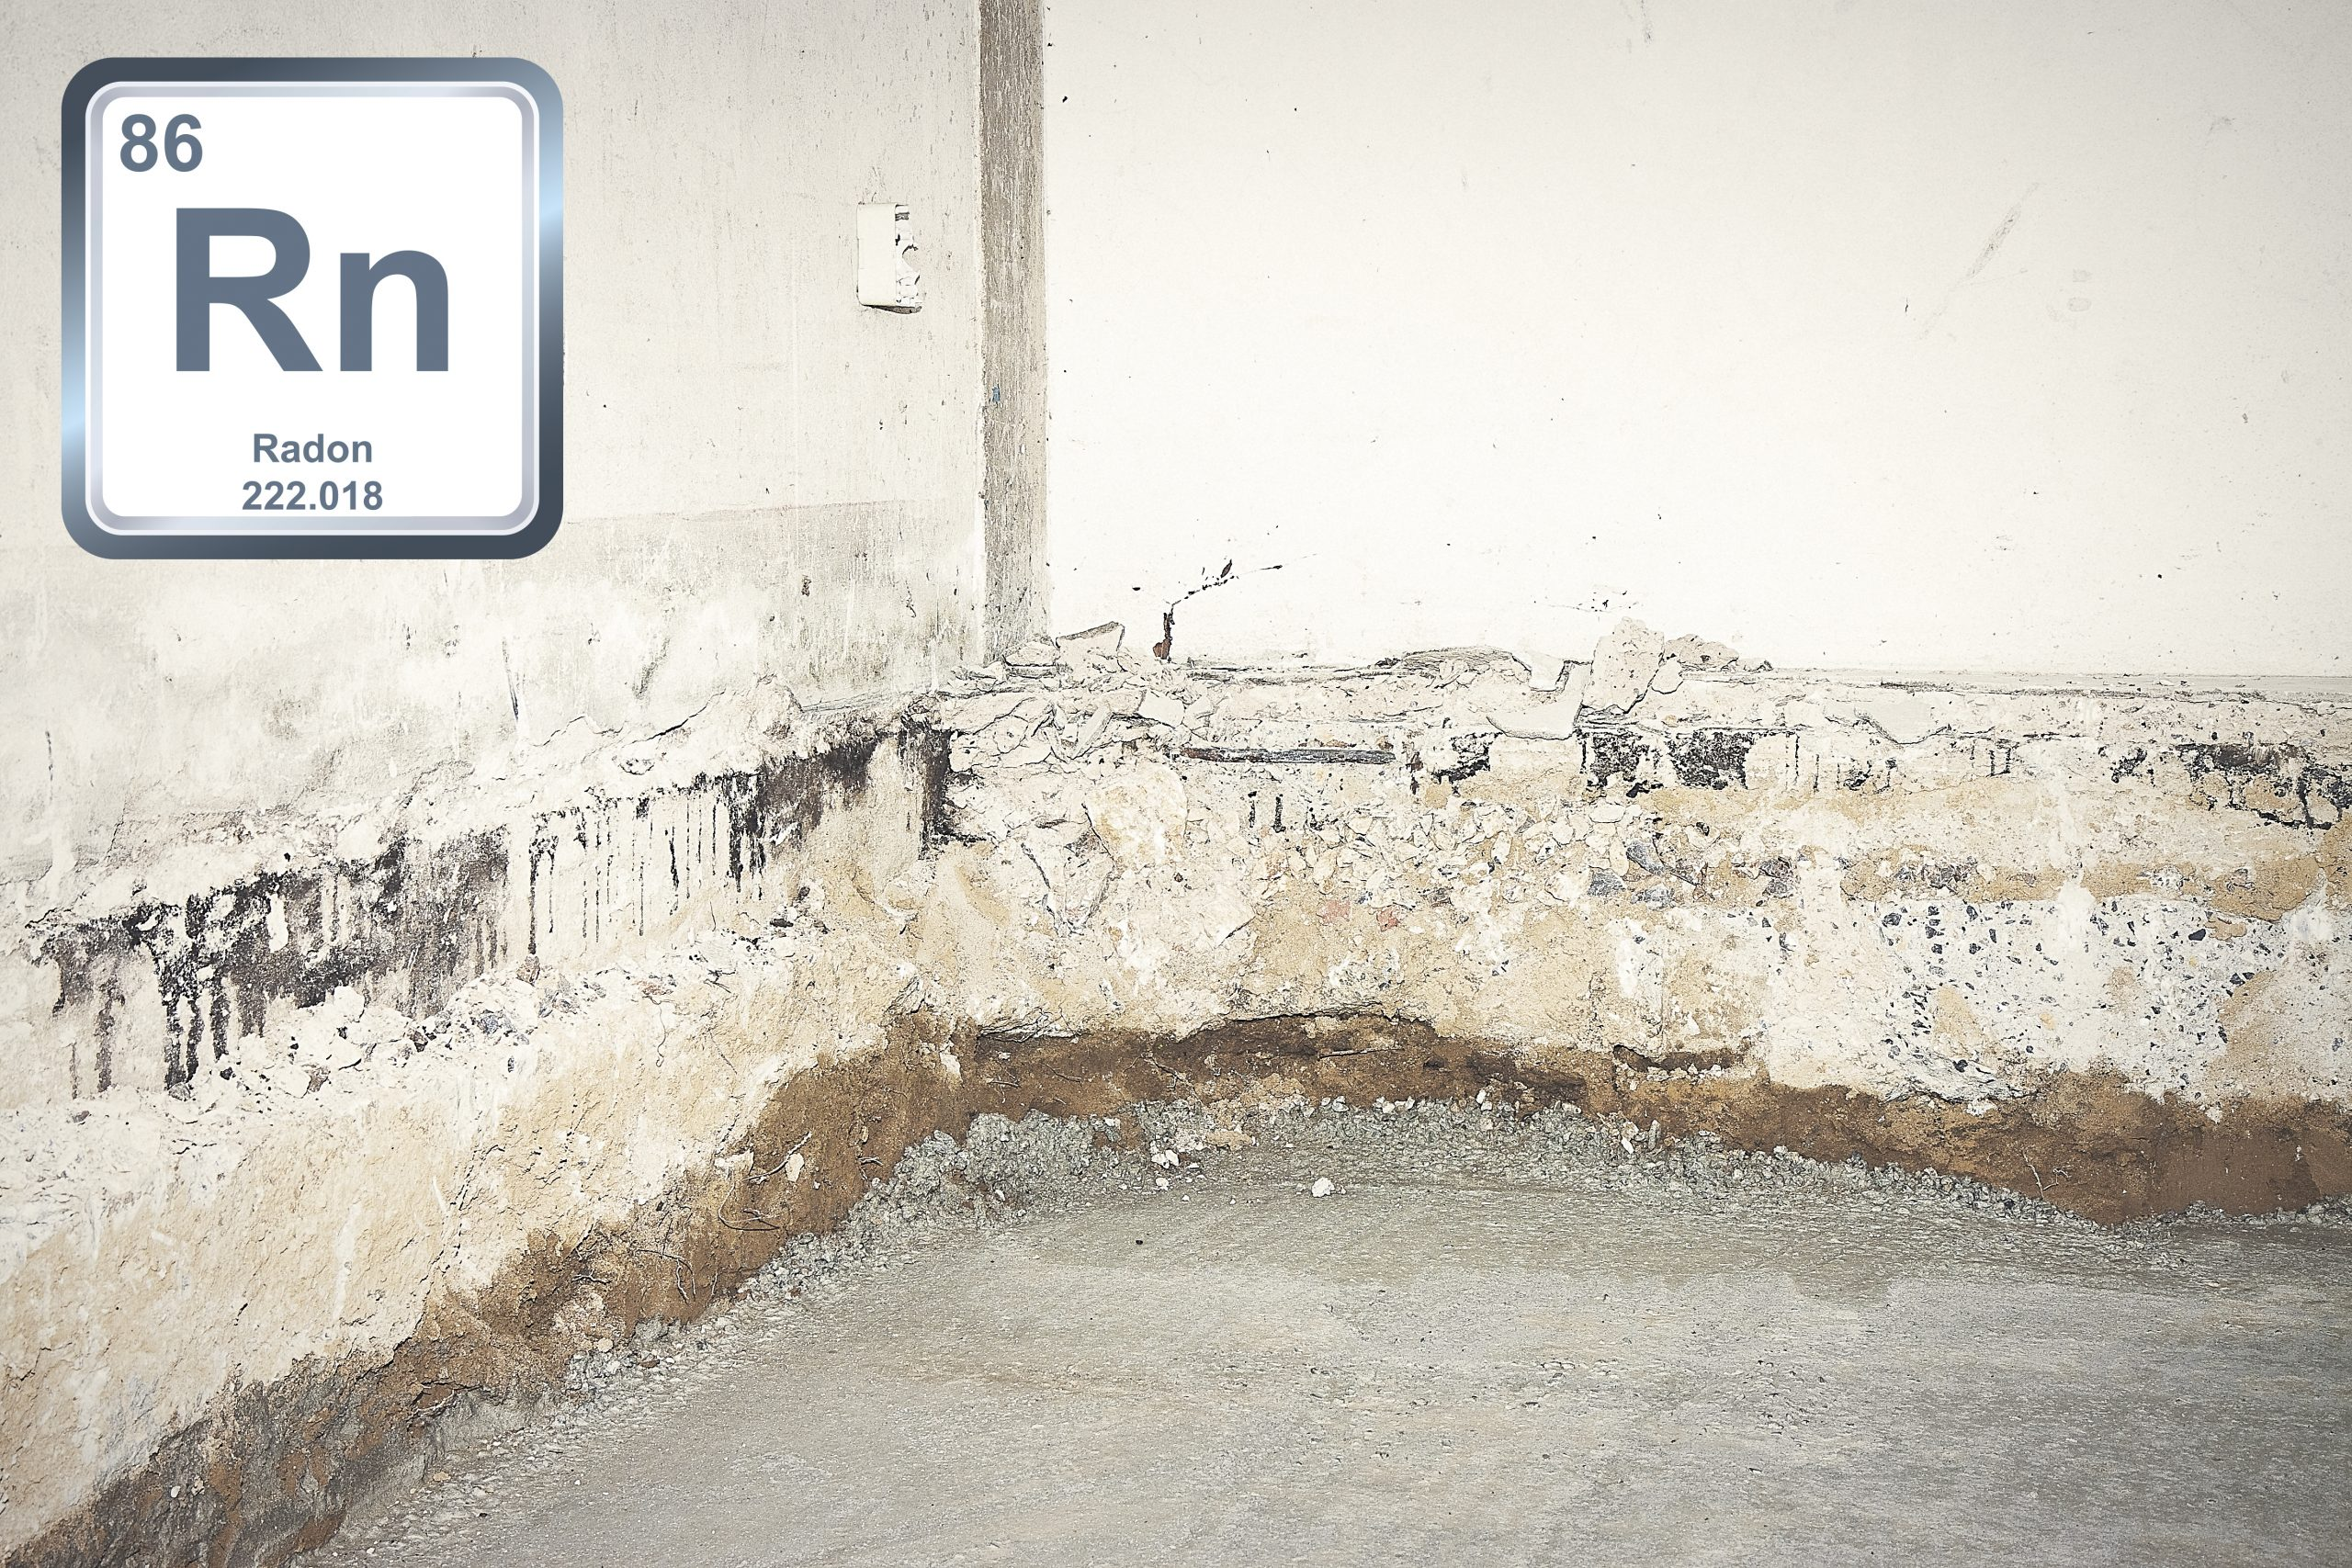 Preparatory stage for the construction of a ventilated crawl space in an old brick building